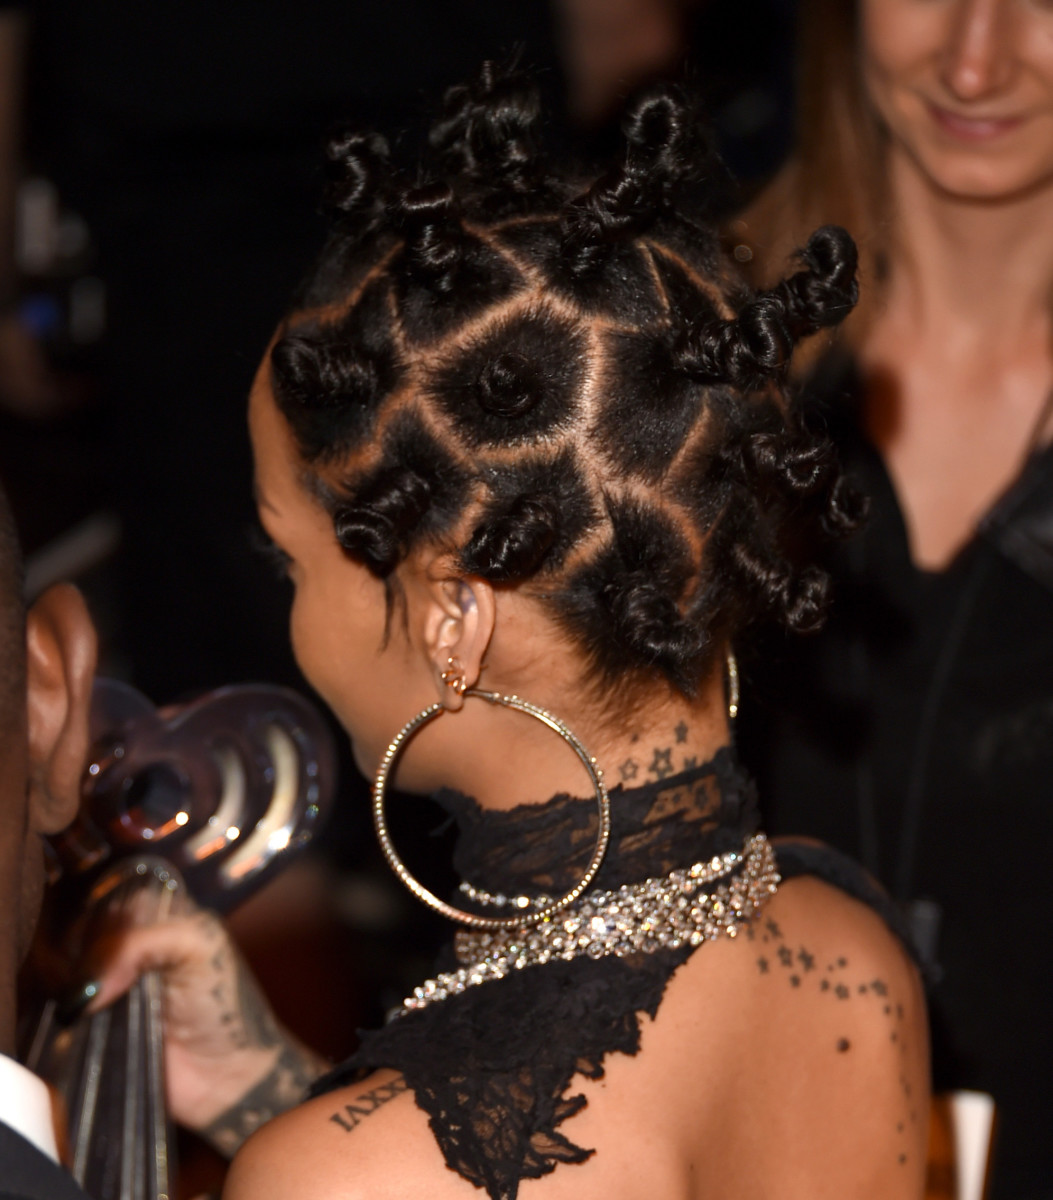 Rihanna in 2014. Photo: Jason Merritt/Getty Images for Clear Channel